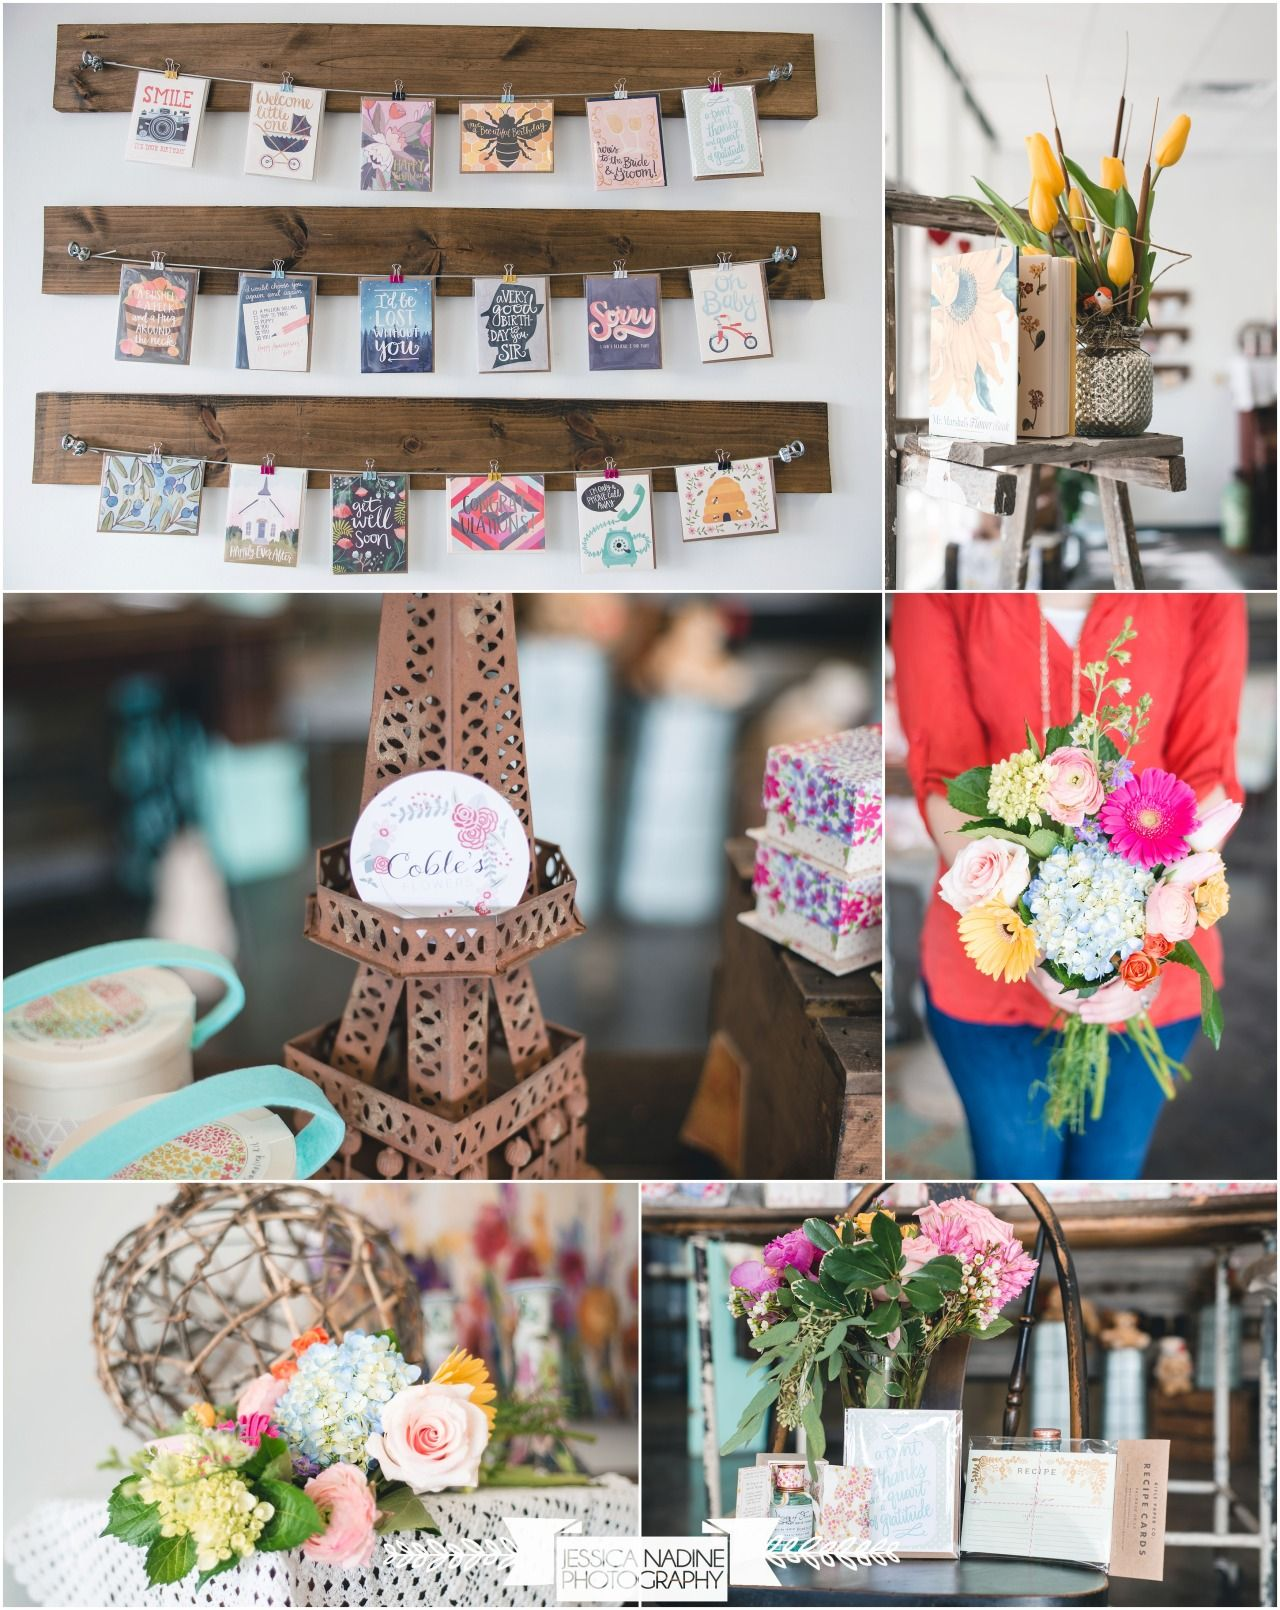 Cobles Flower Shop In Sand Springs Tulsa Oklahoma Wedding